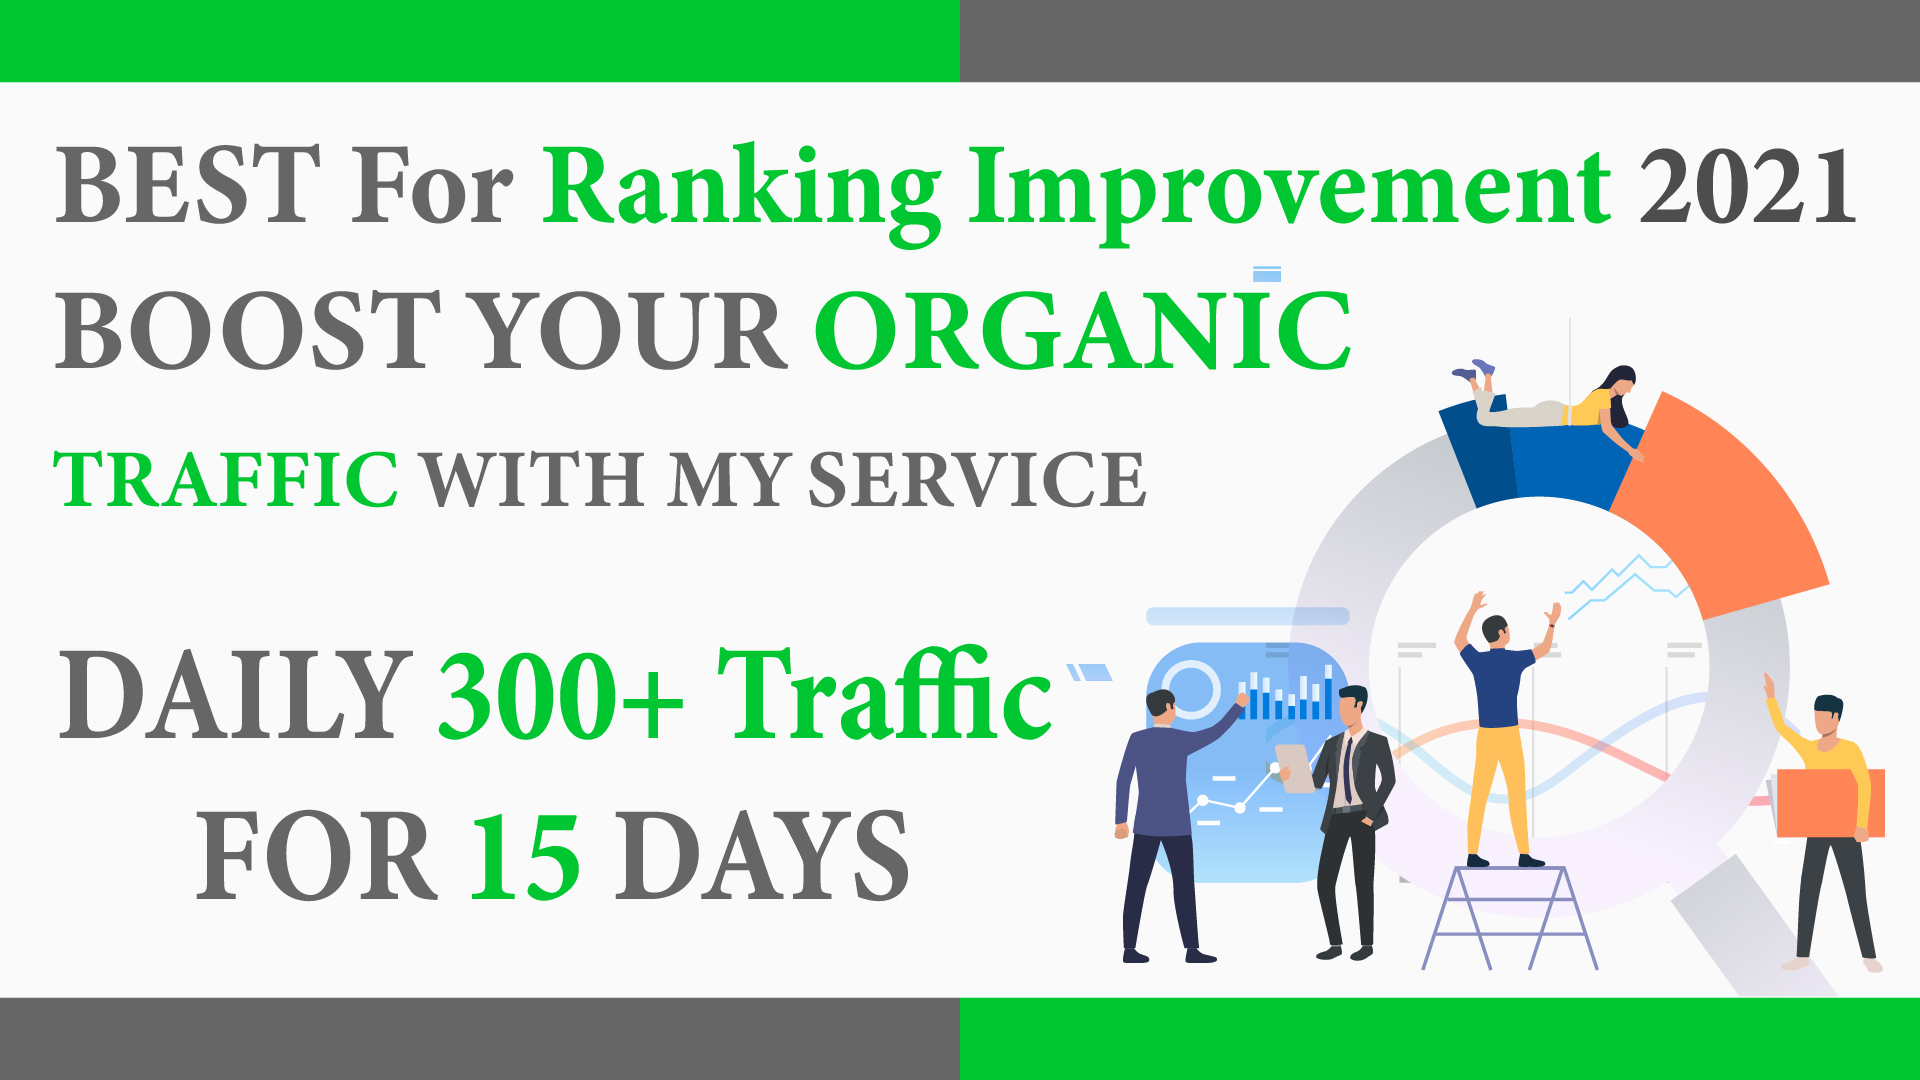 Daily 300+ Organic traffic for 15 Days - Best for ranking Improvement